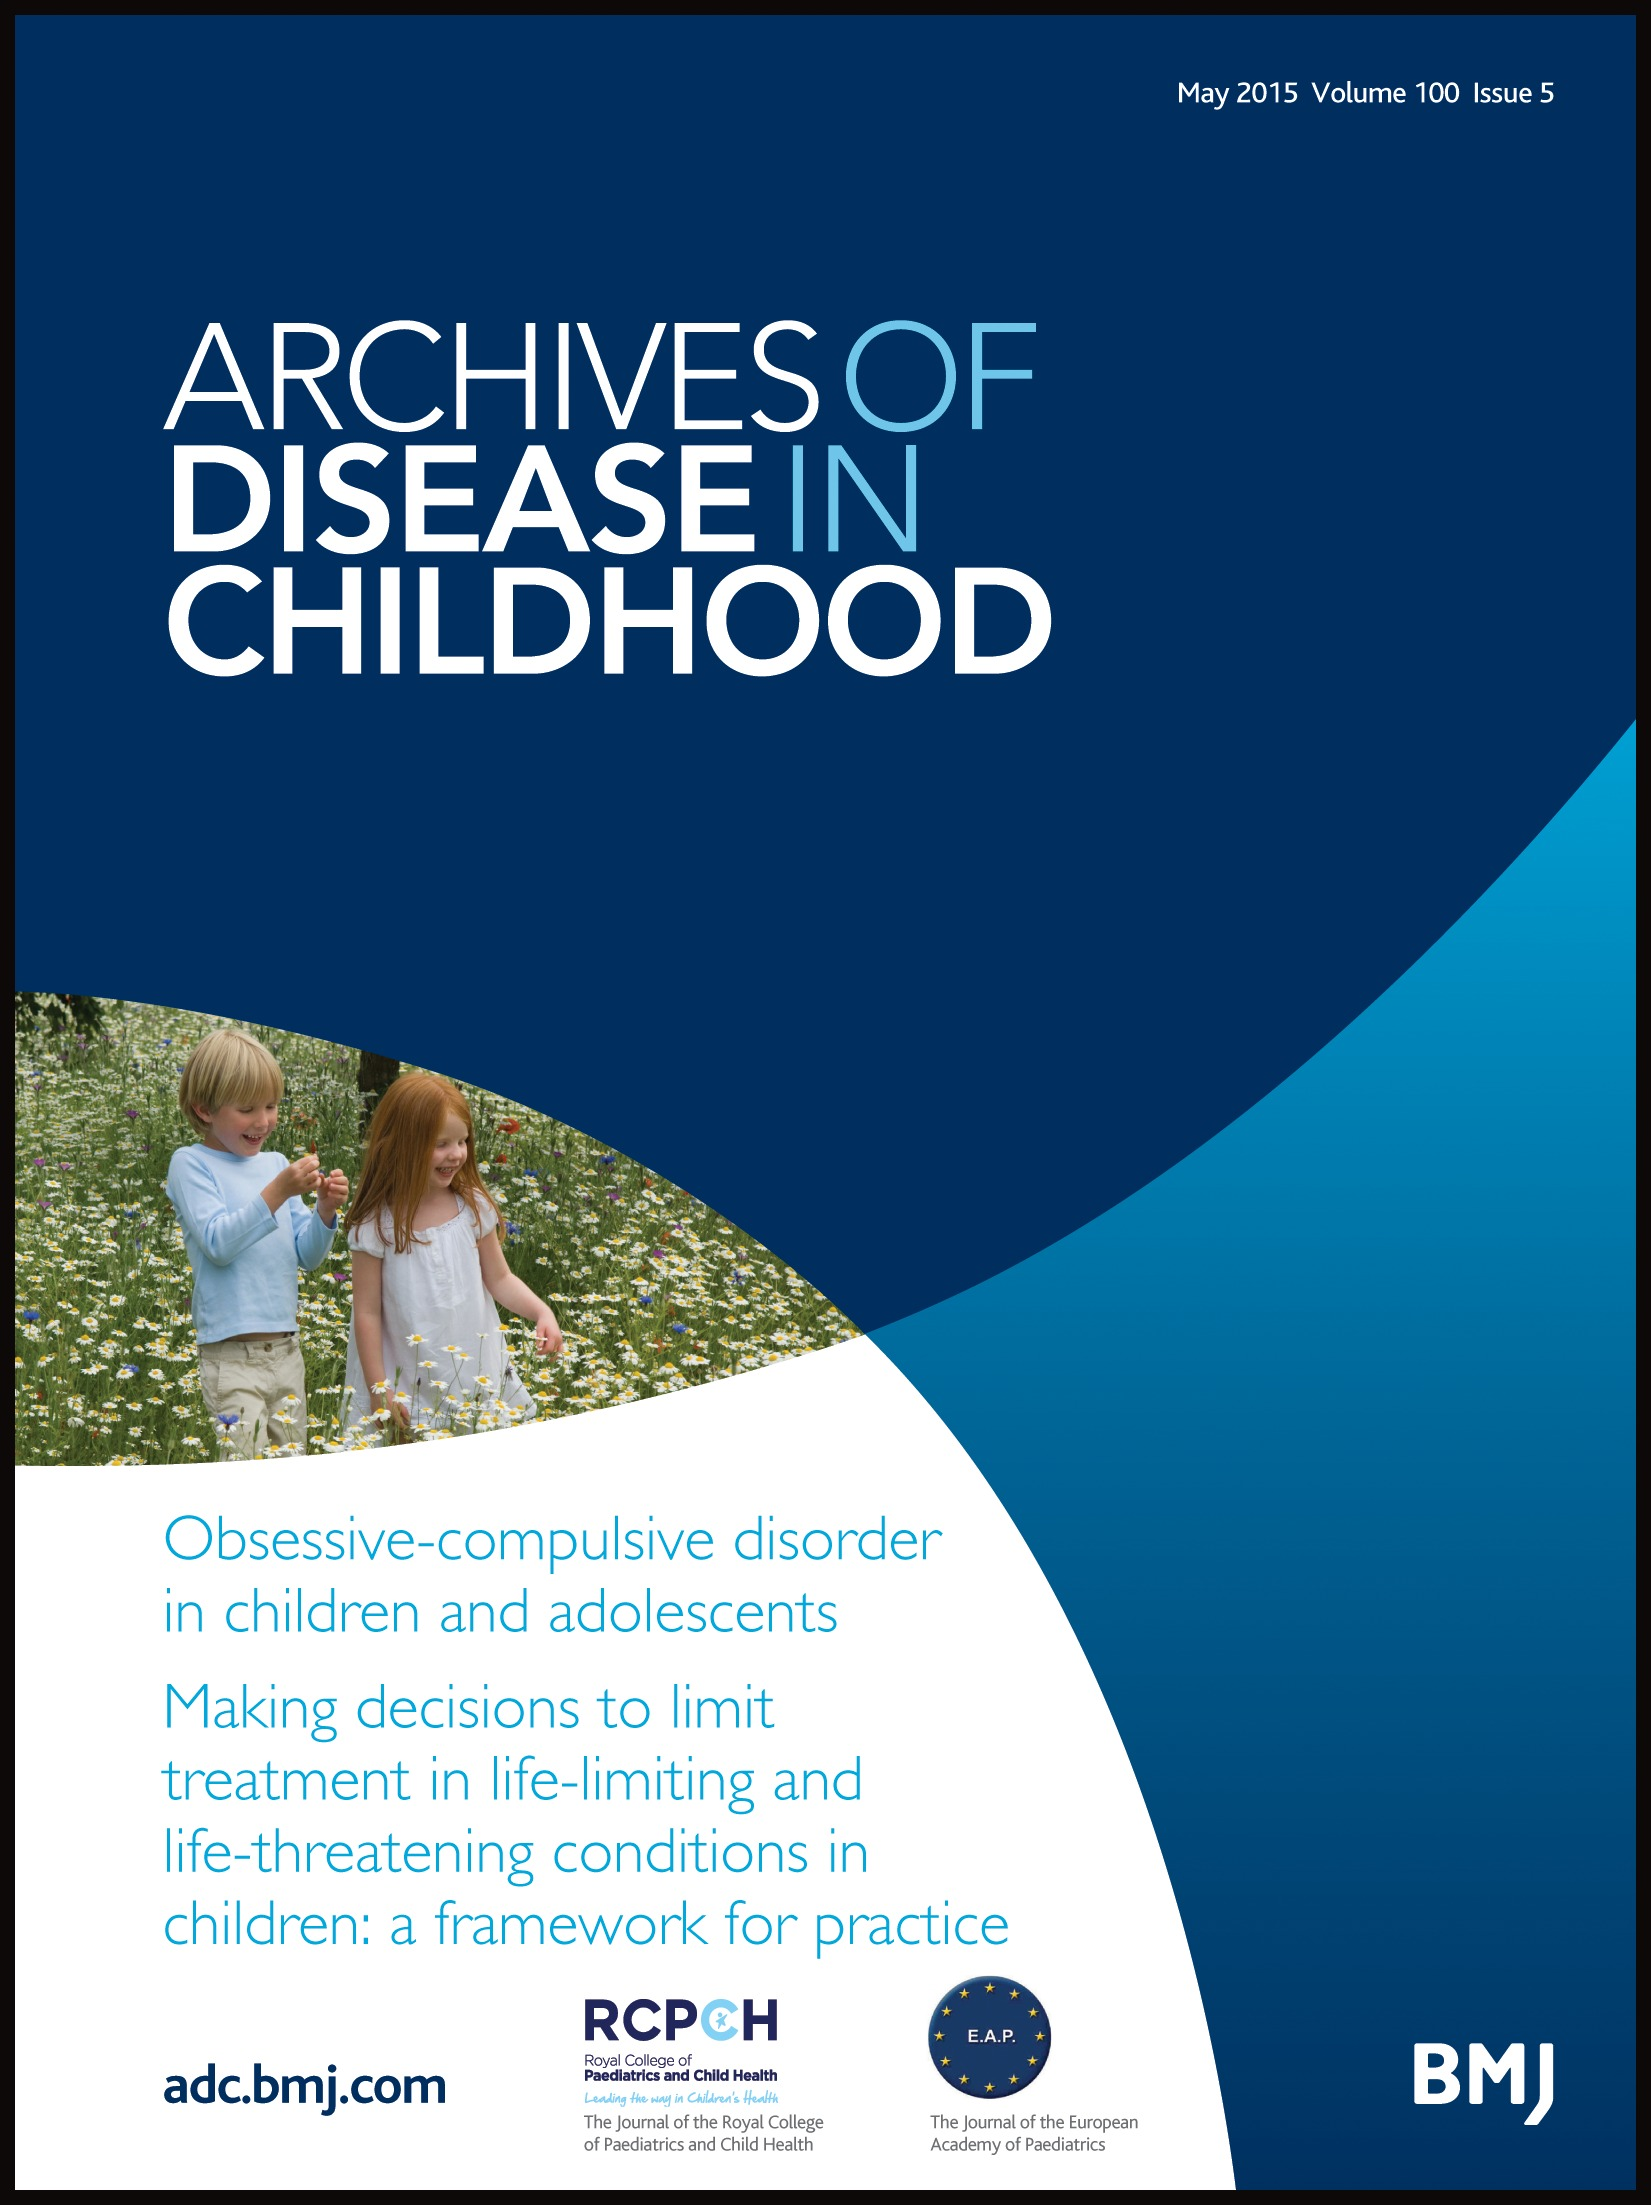 Obsessive-compulsive disorder in children and adolescents | Archives